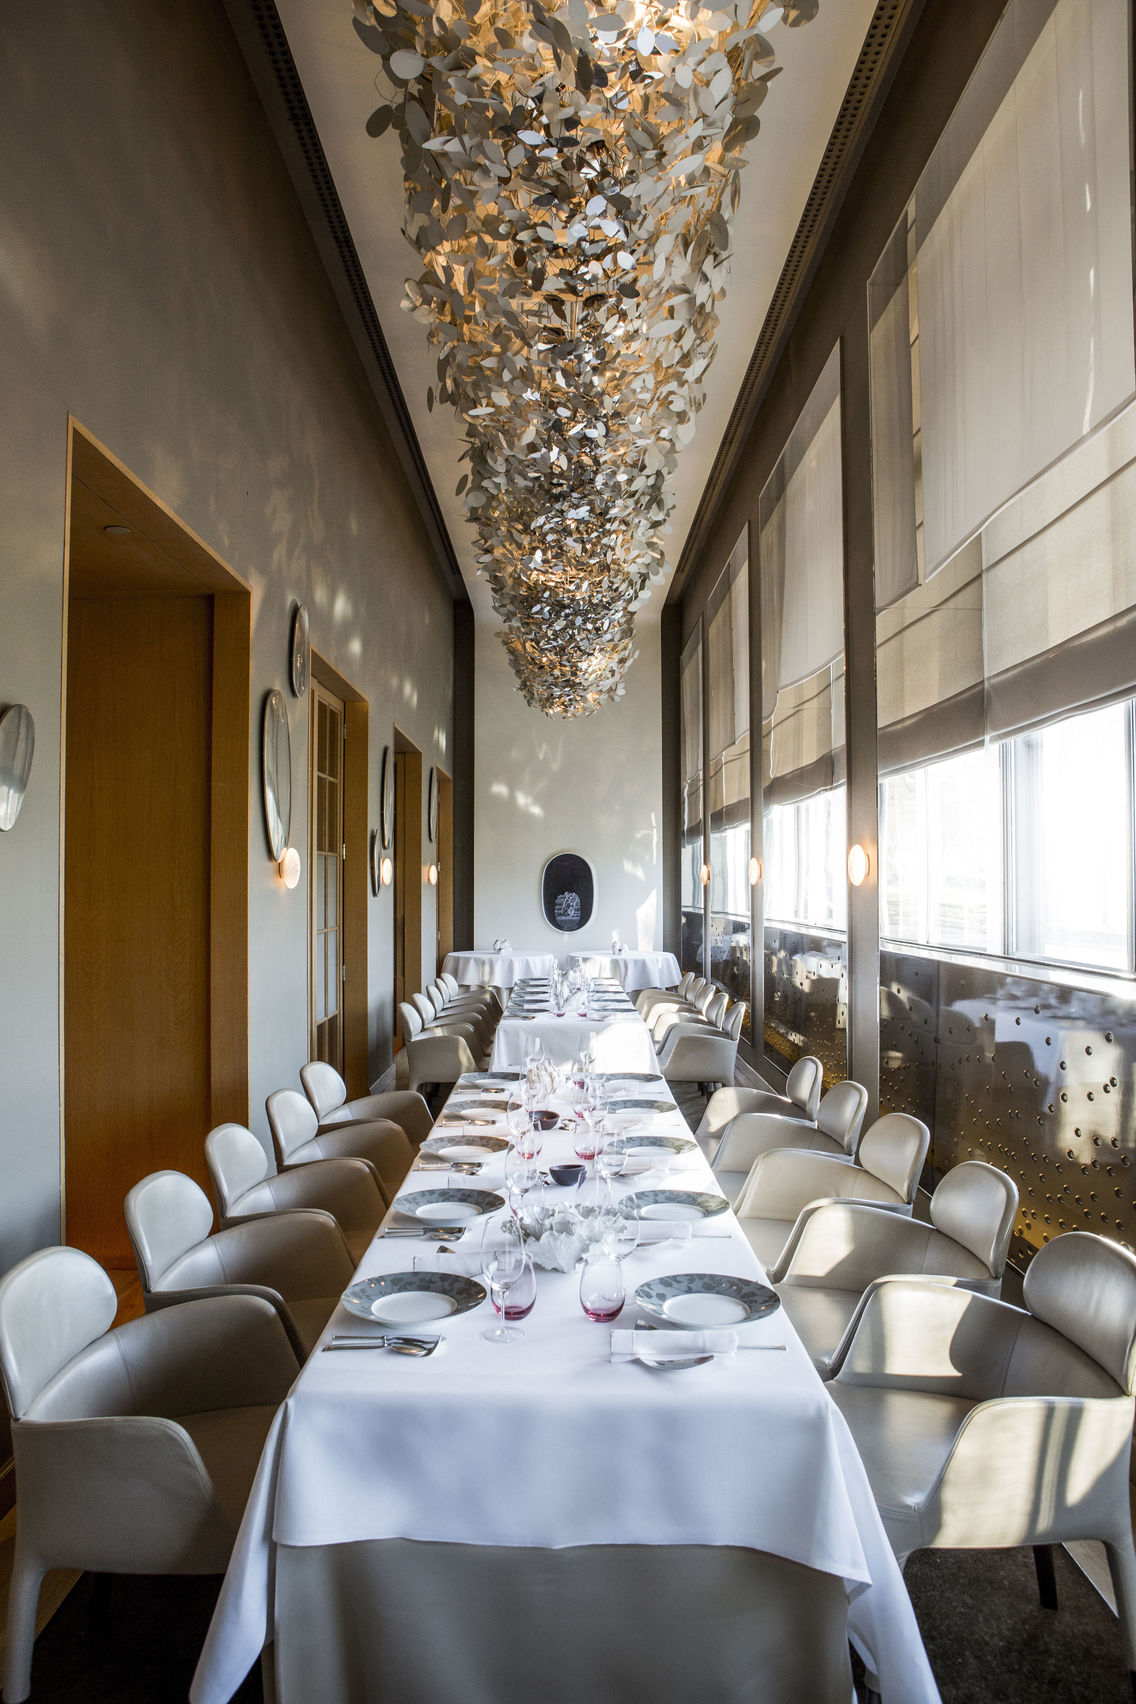 Salon Park Lane (lunch), Alain Ducasse at The Dorchester